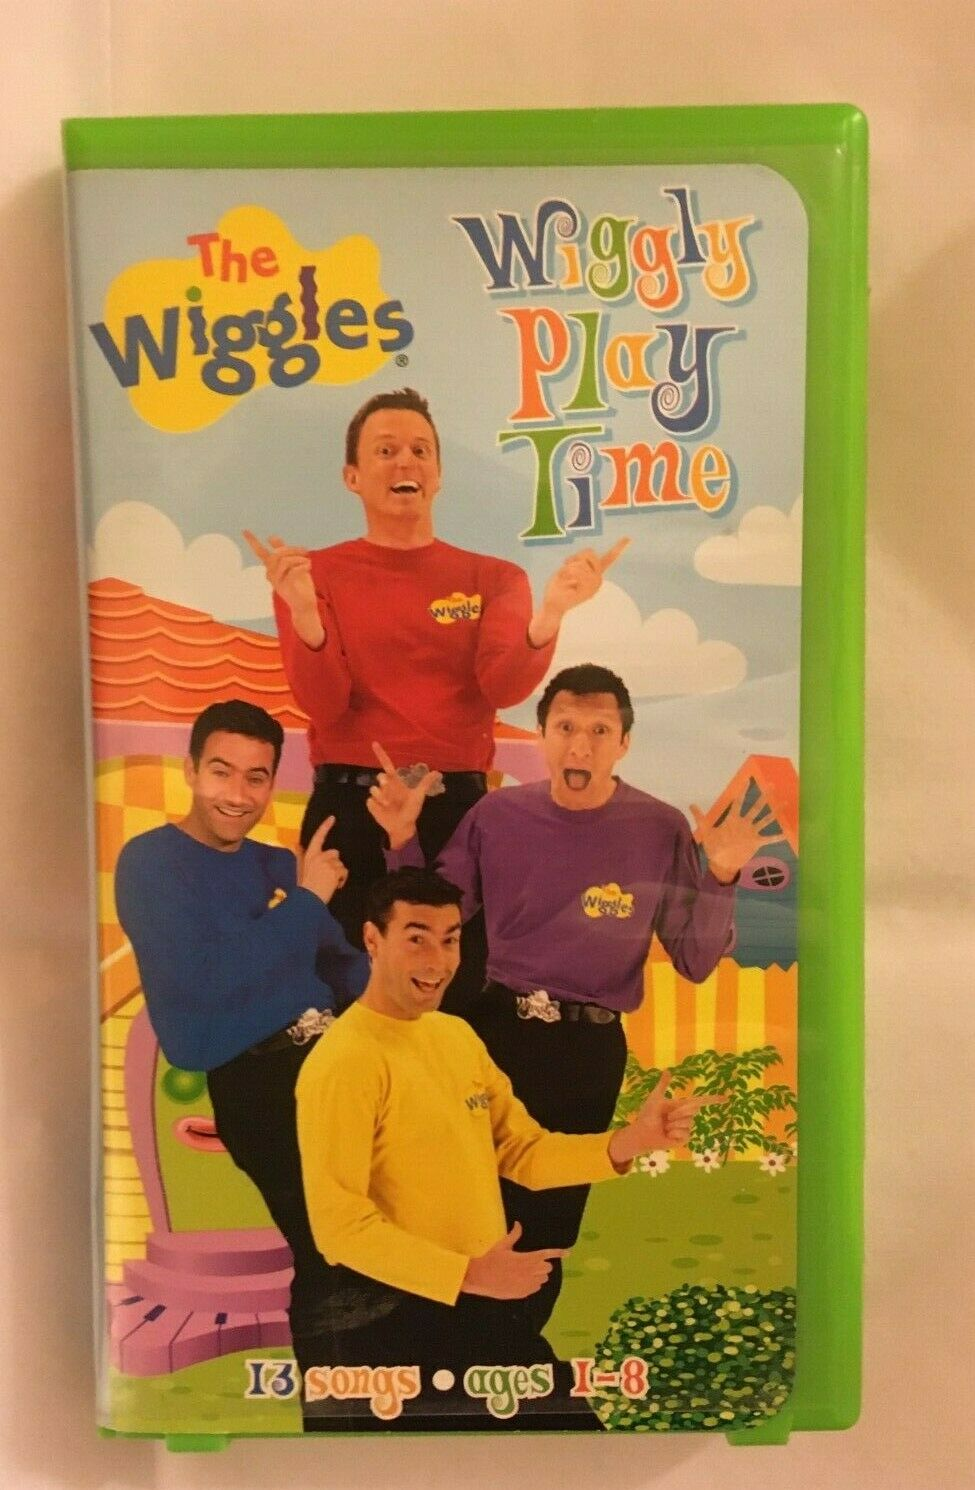 The Wiggles: Wiggly Playtime (2001 VHS)